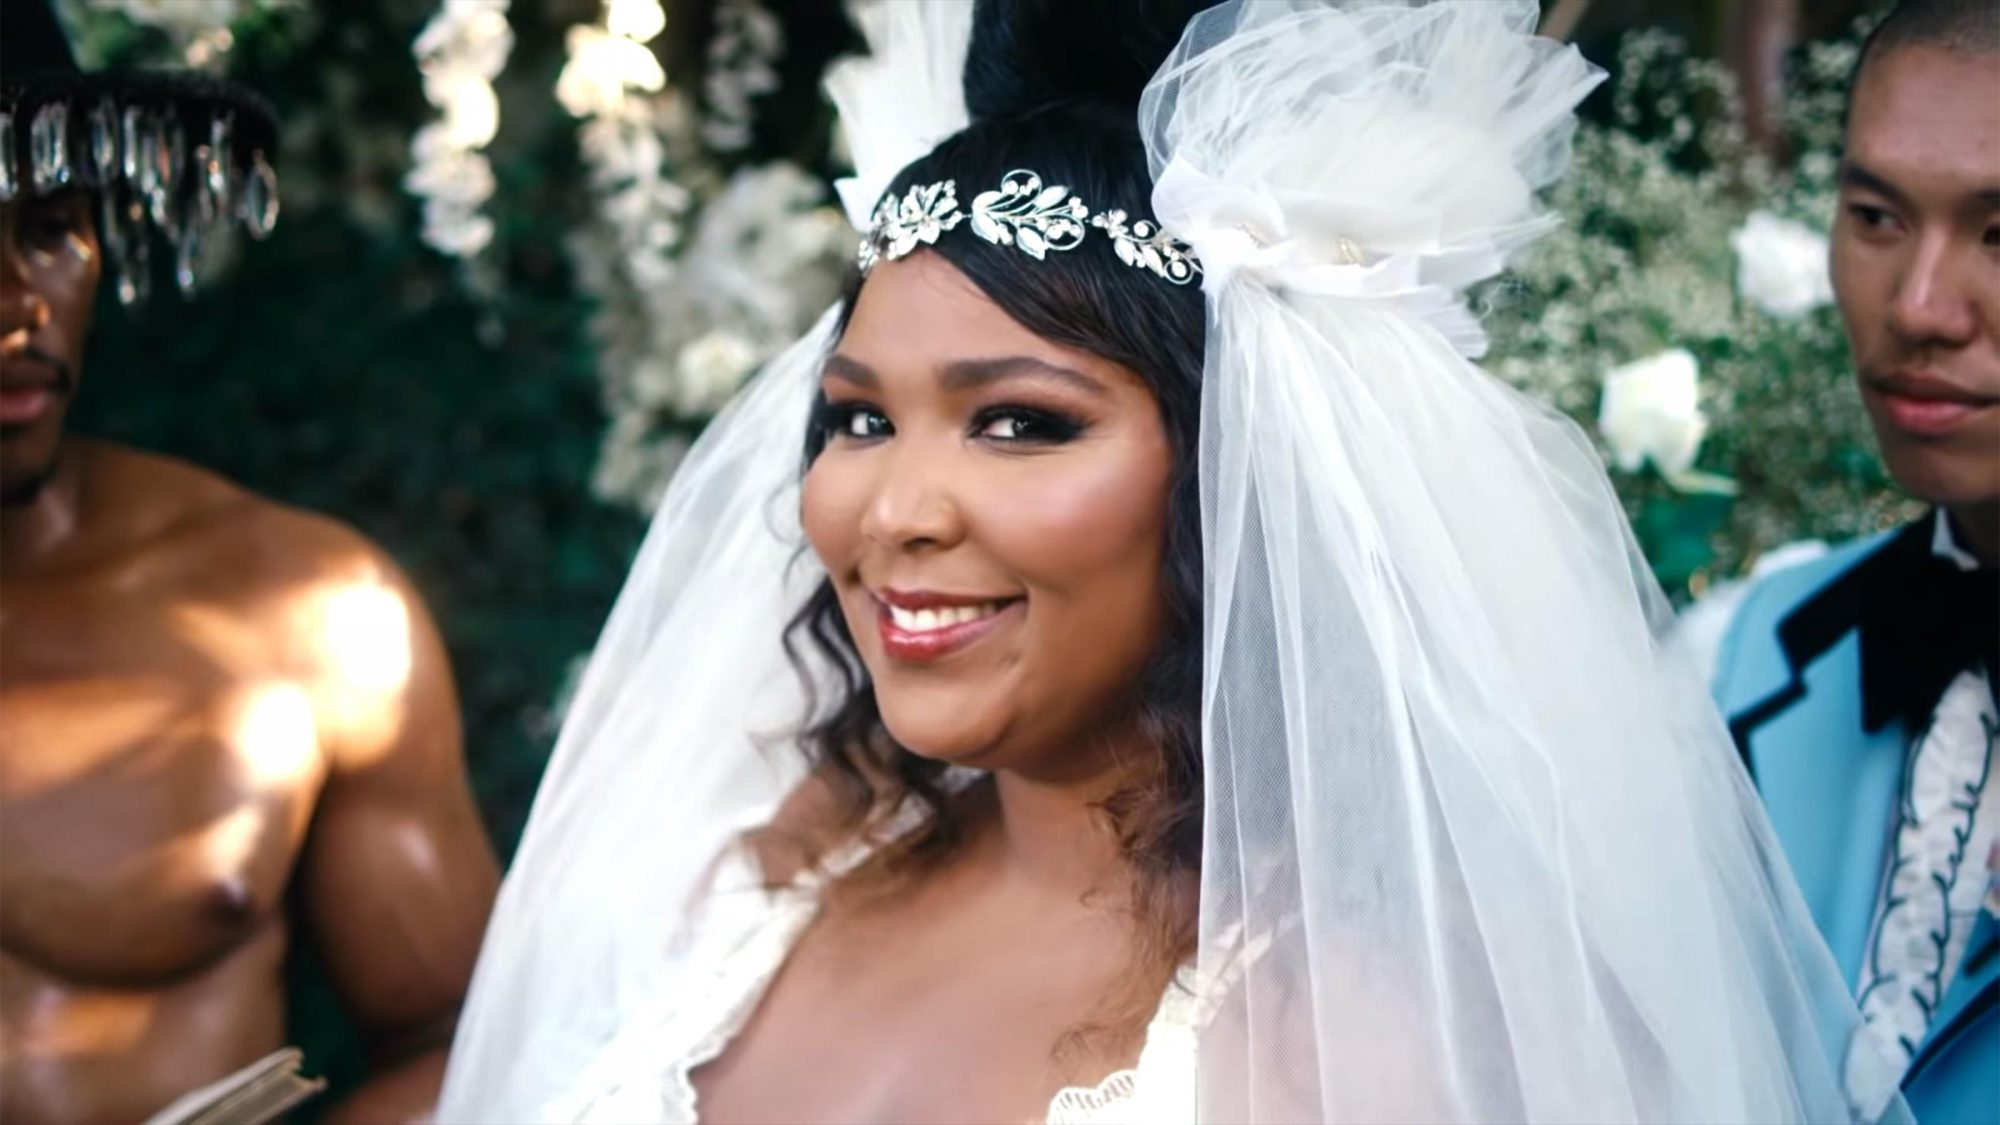 Lizzo - Truth Hurts (Official Video) (screen grab) https://www.youtube.com/watch?v=P00HMxdsVZI CR: Lizzo/YouTube